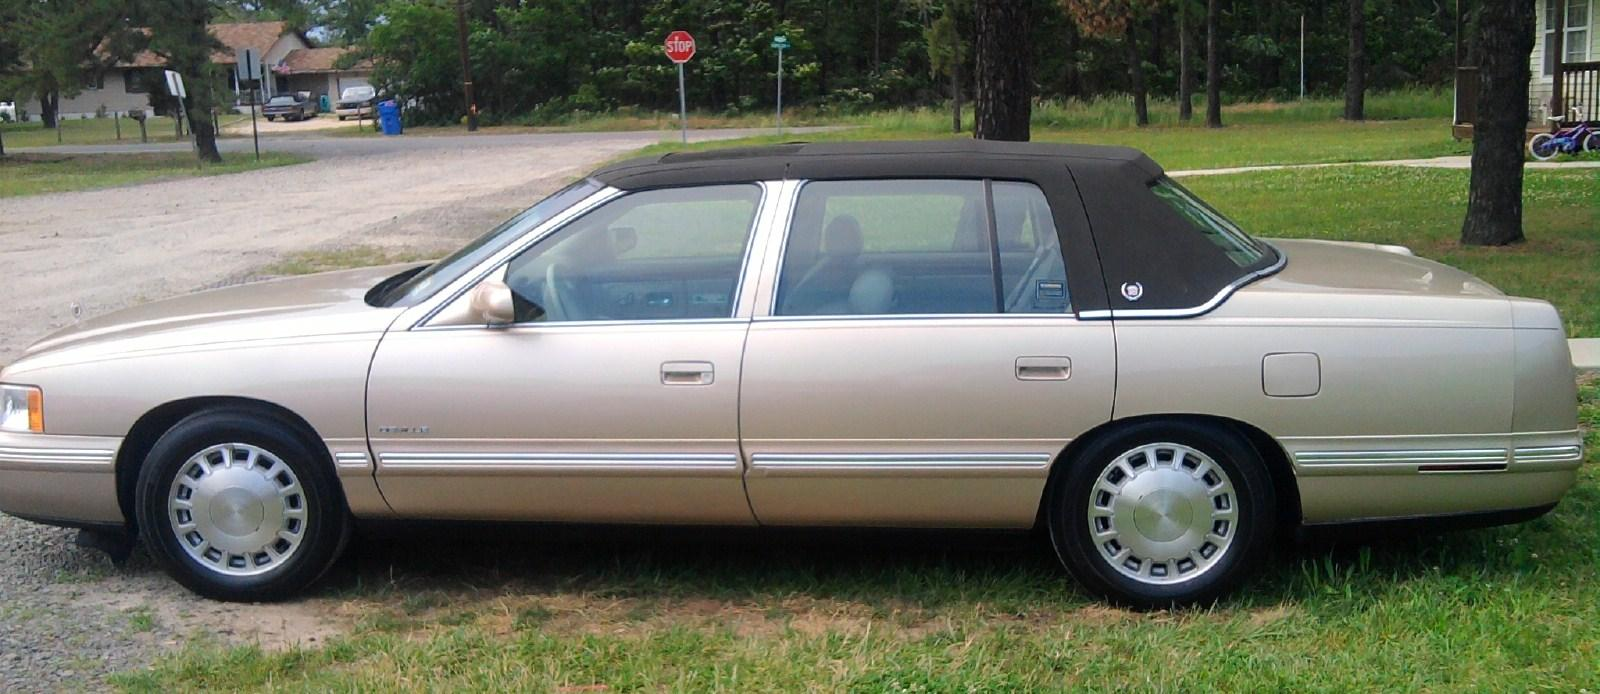 bigsnoopt72 39 s 1998 cadillac deville sedan 4d in manchester. Cars Review. Best American Auto & Cars Review